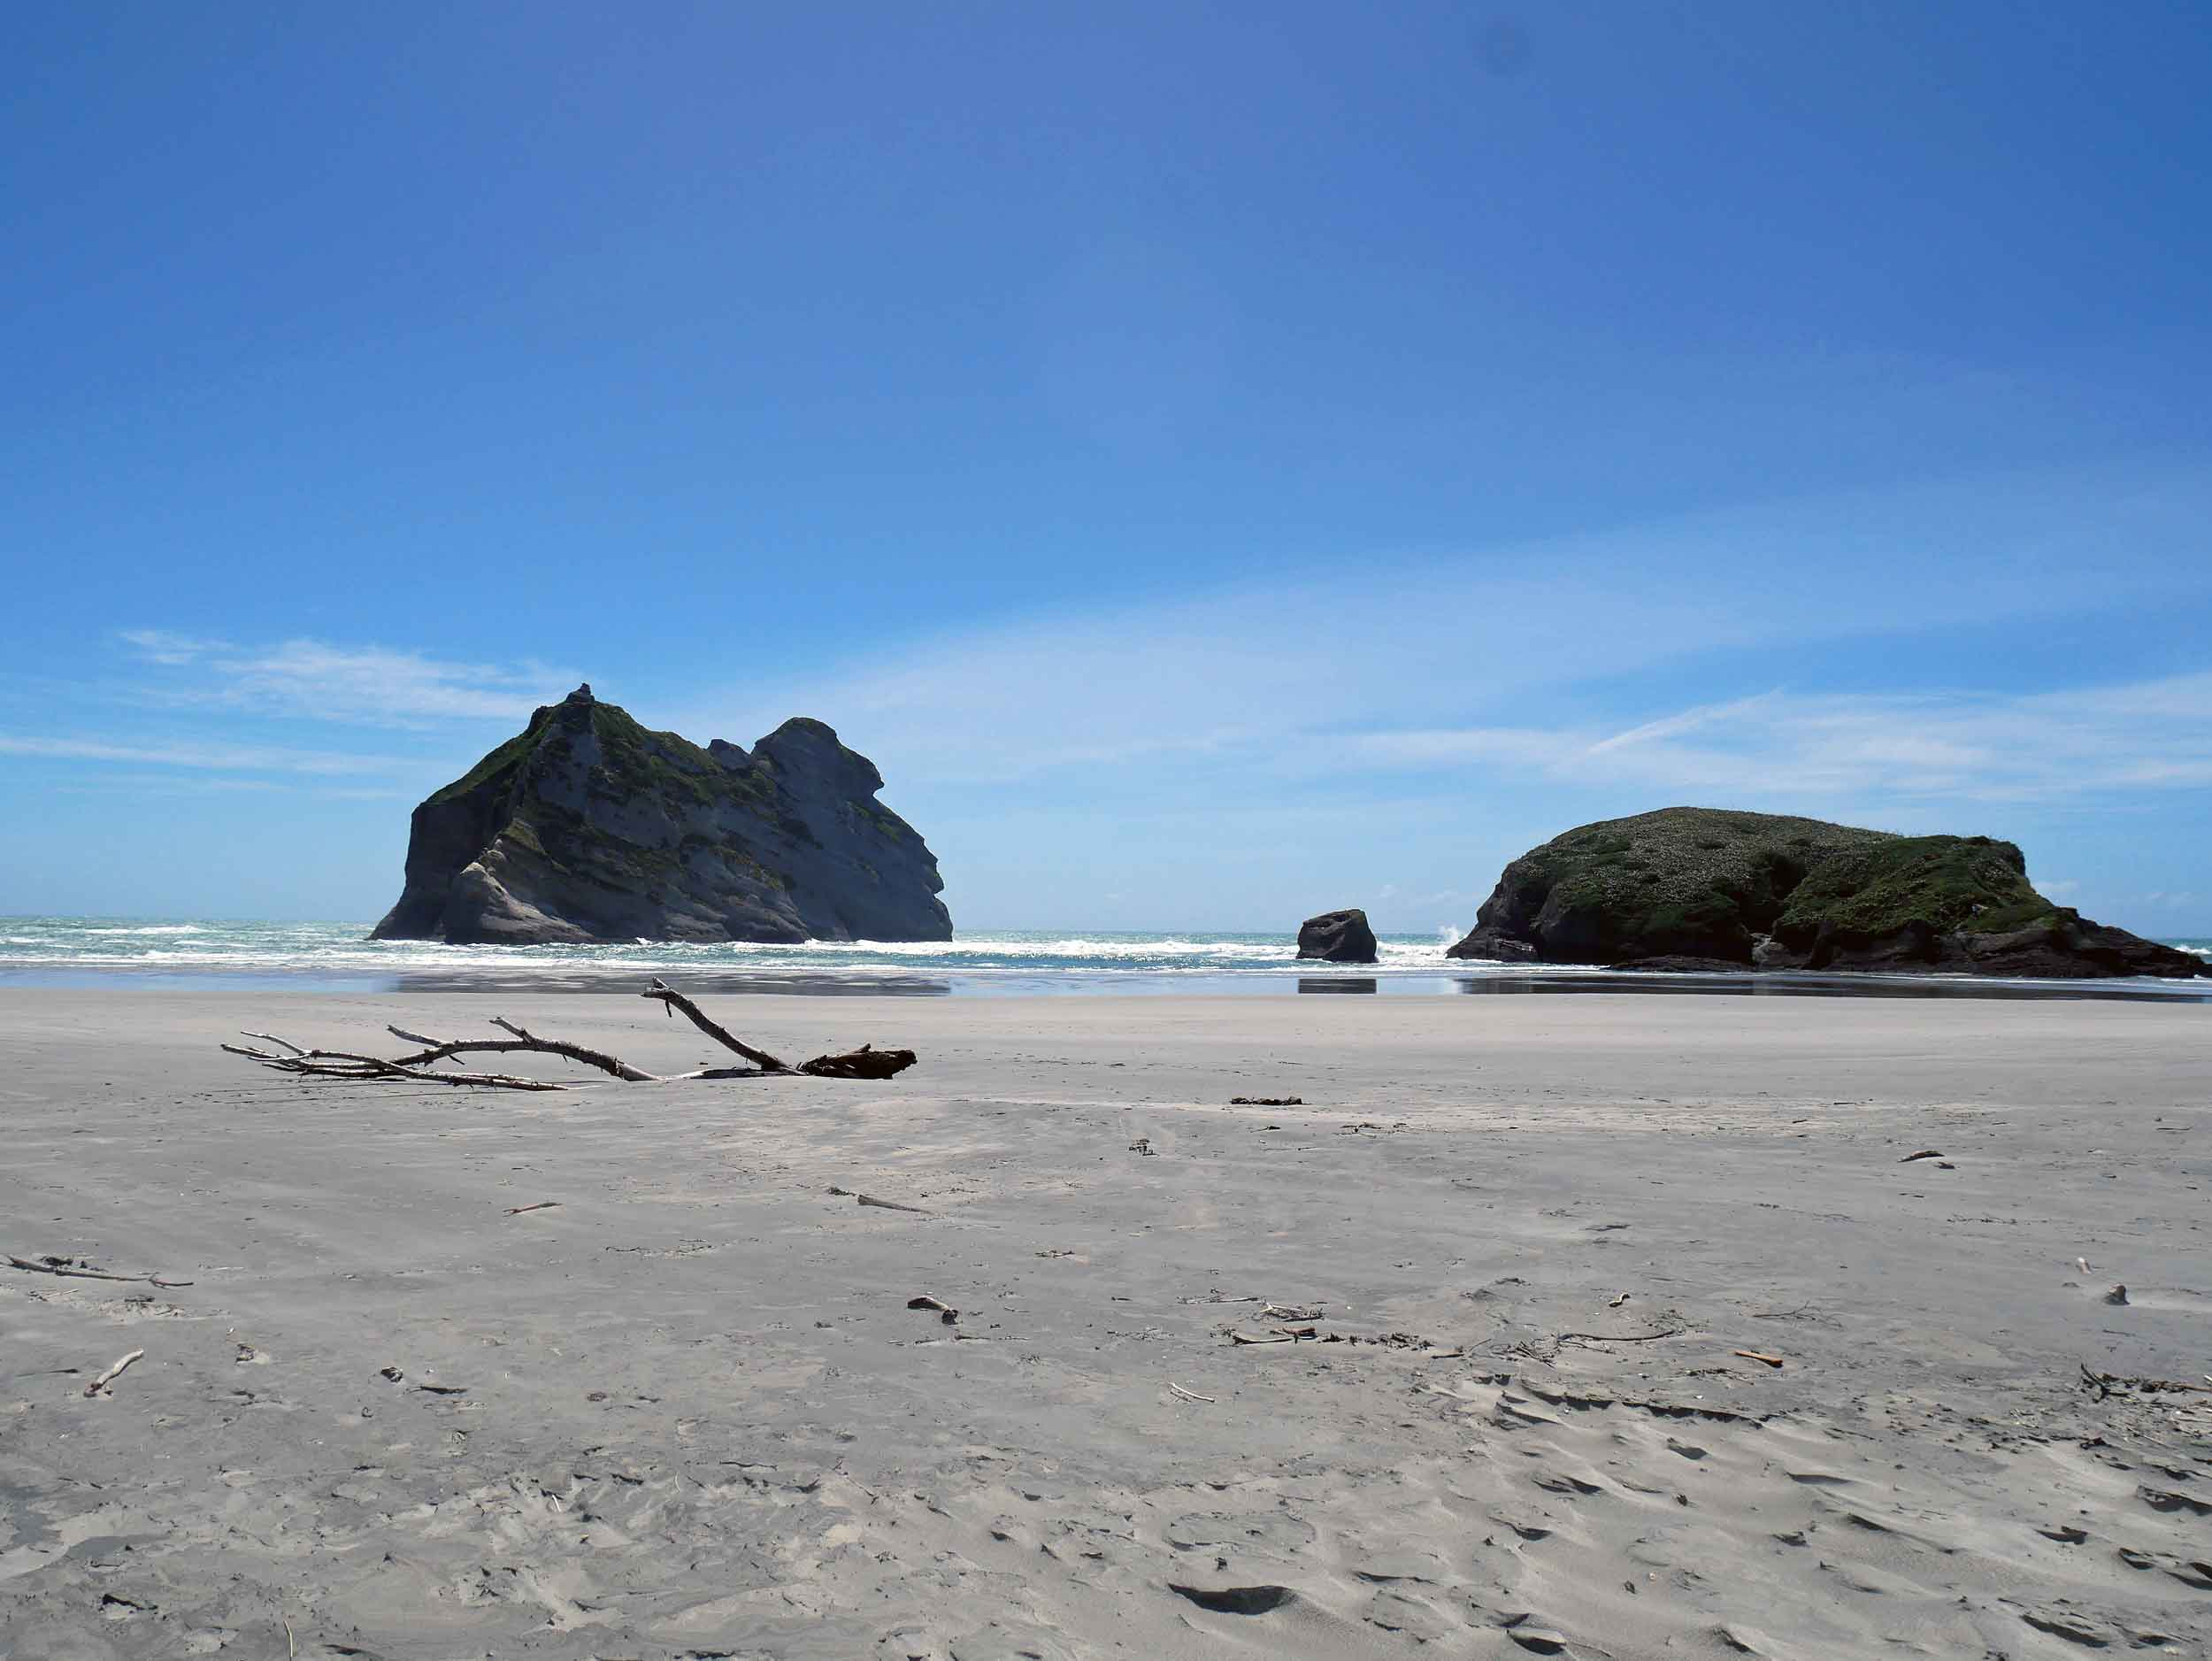 Low tide (during a full moon, no less) presented massive beach at Wharariki, which is only accessible via a 20-minute walk through paddocks and rolling hills (Jan 13).